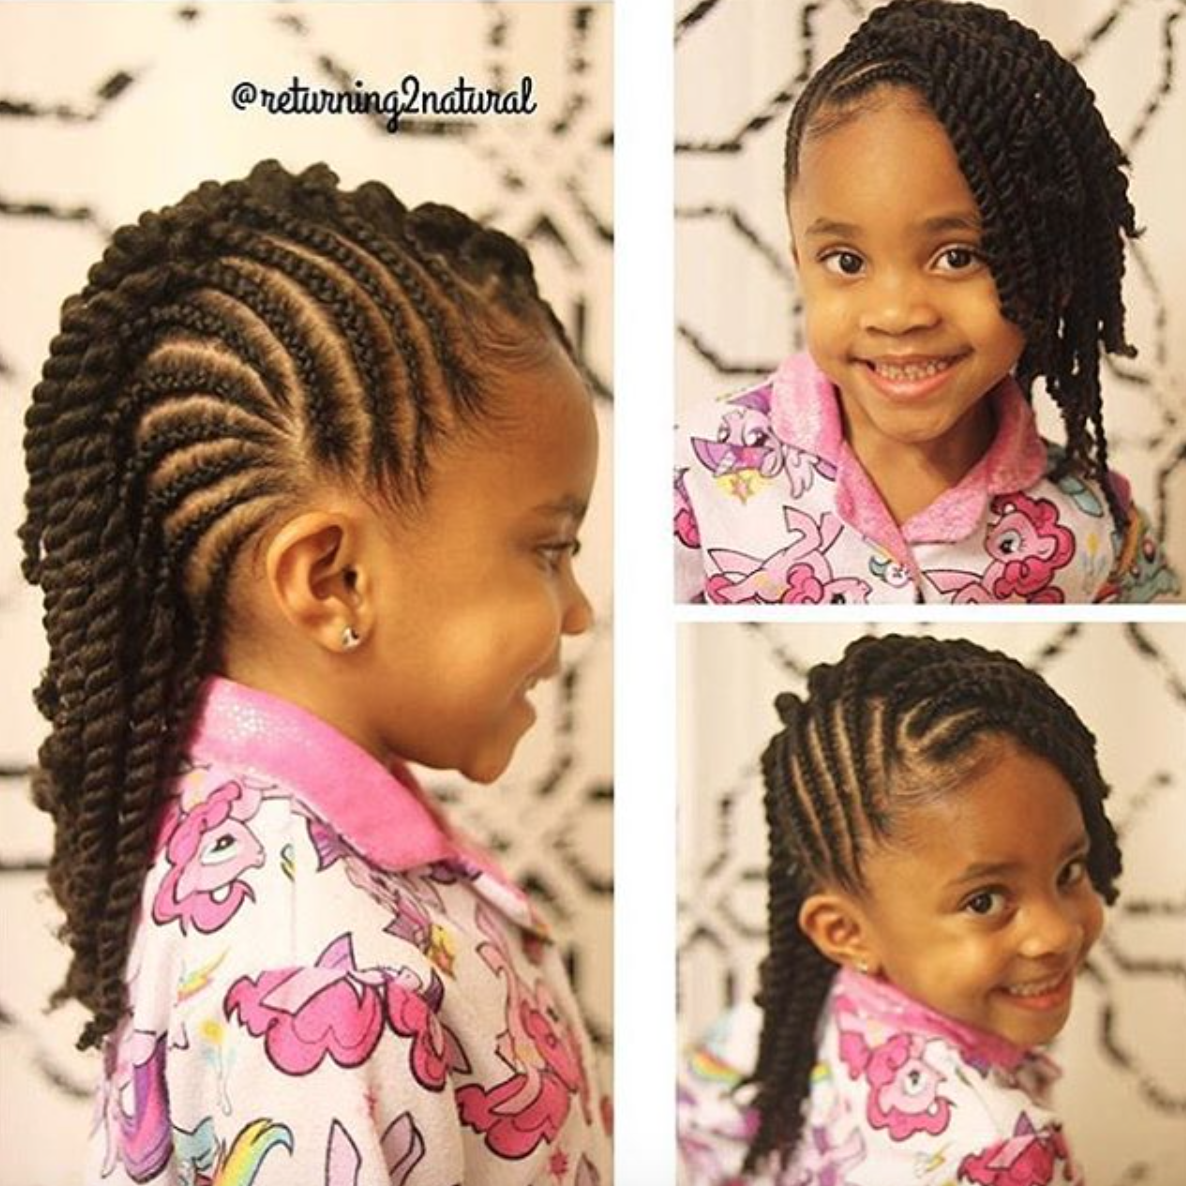 Kids Hairstyles Gorgeous Adorable Returning2Natural  Httpcommunityblackhairinformatio